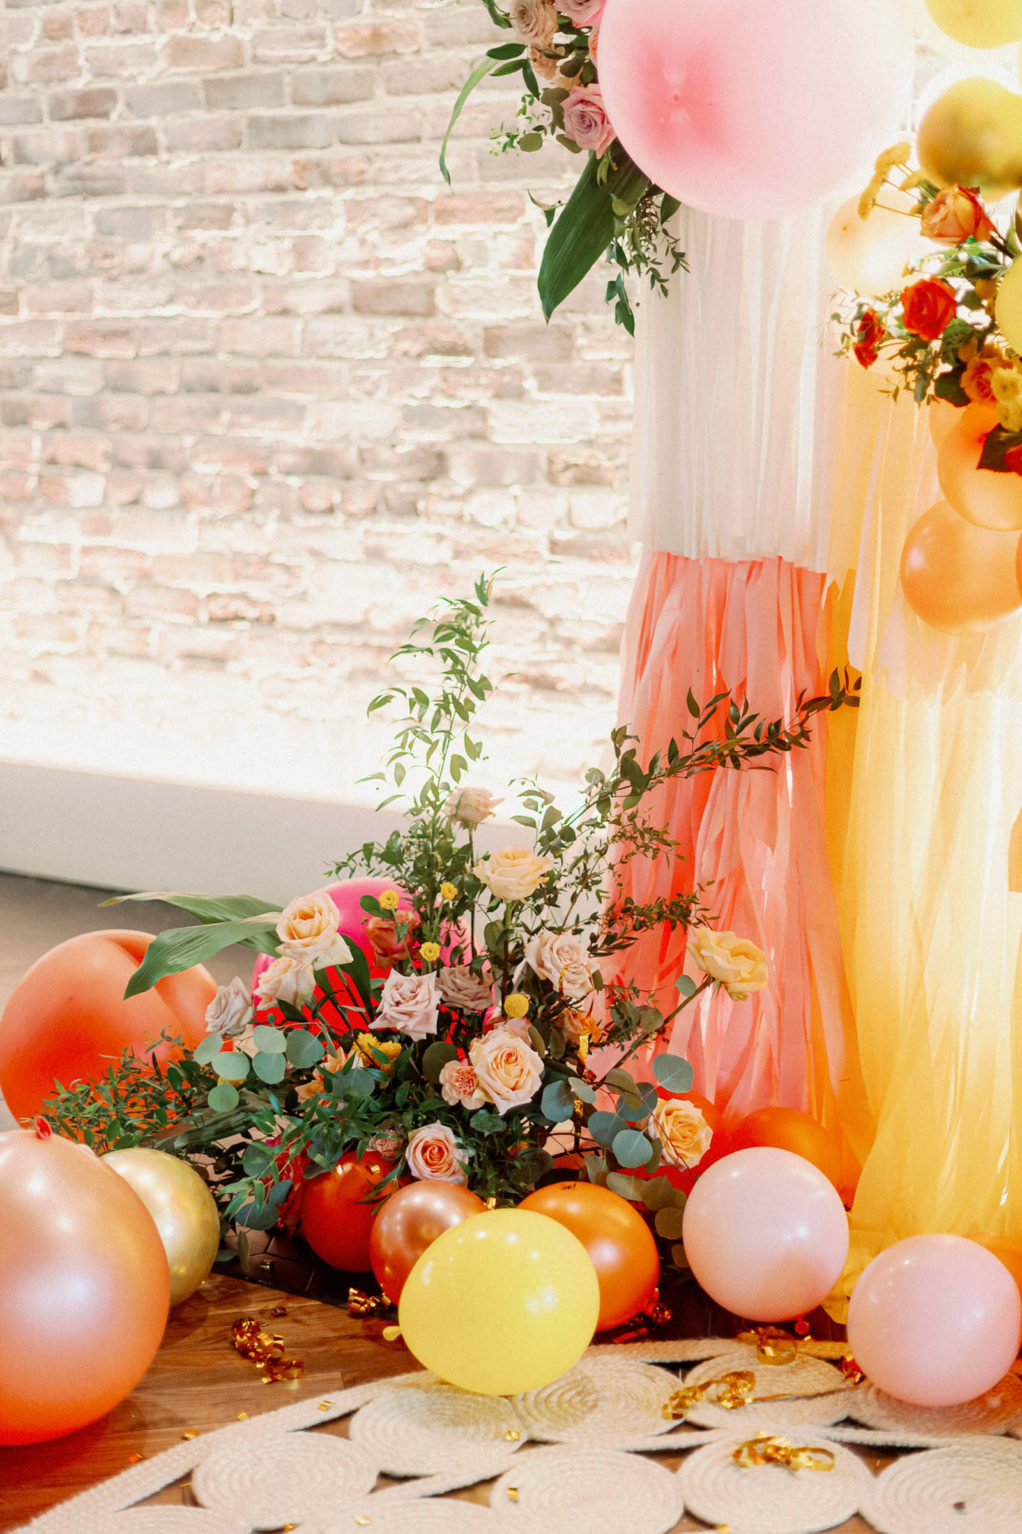 Whimsical and Colorful Wedding Decor, Pink, Orange, Yellow and White Fringe and Balloon Ceremony Backdrop   Tampa Bay Wedding Photographer Dewitt for Love